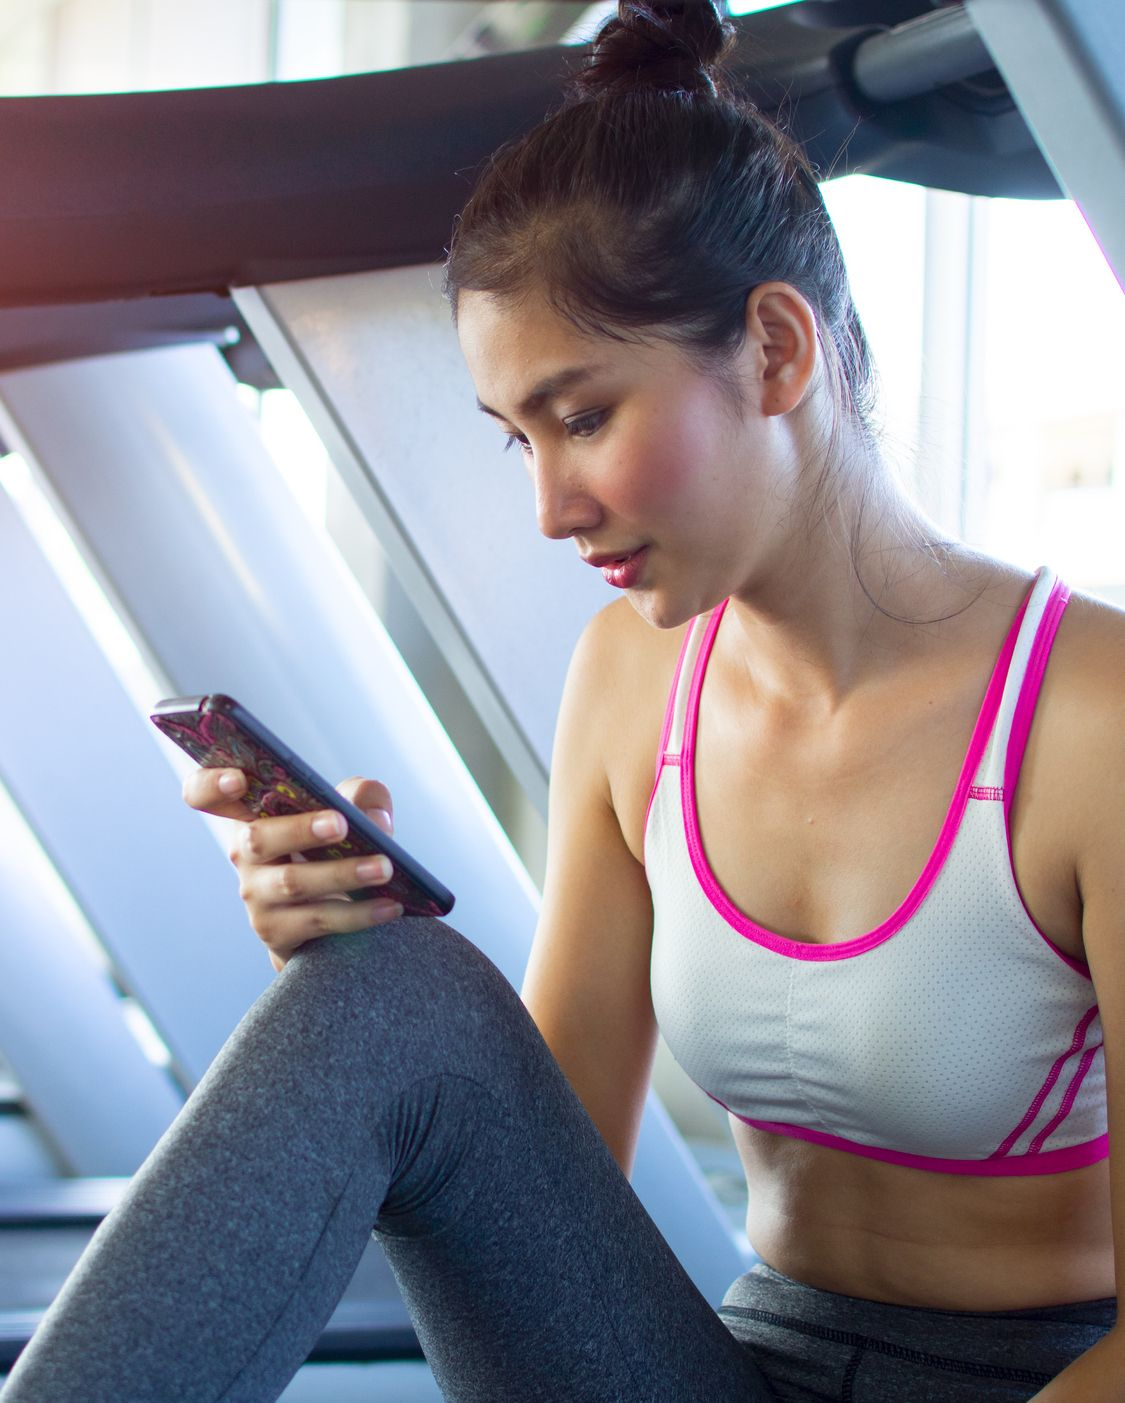 Never listen to music without headphones. It's cool that you're into listening to loud hip-hop while you work out, but not everyone needs to be up to speed on your latest playlist.